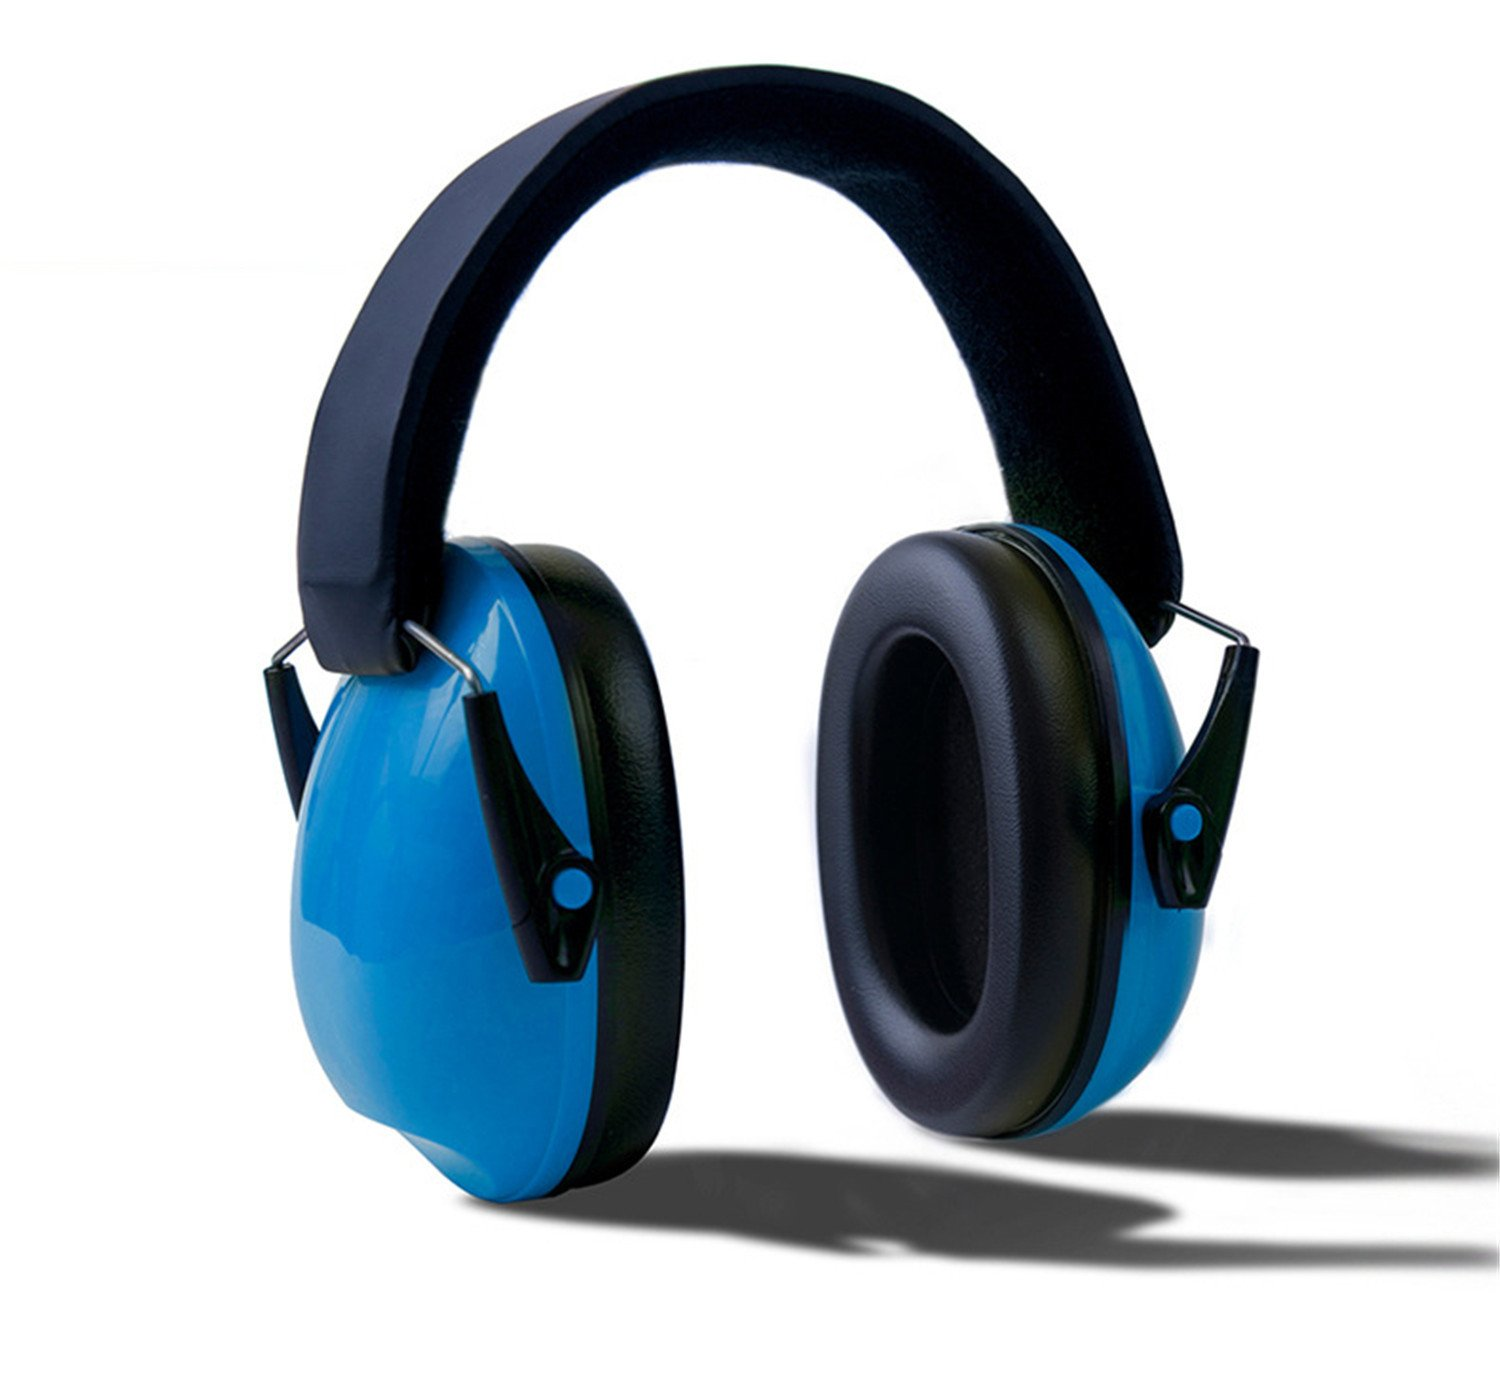 HMILYDYK Kids Ear Defenders Noise Cancelling HeadPhones Foldable Hearing Protectors Adjustable Headband Ear Muffs for Children and Small Adults